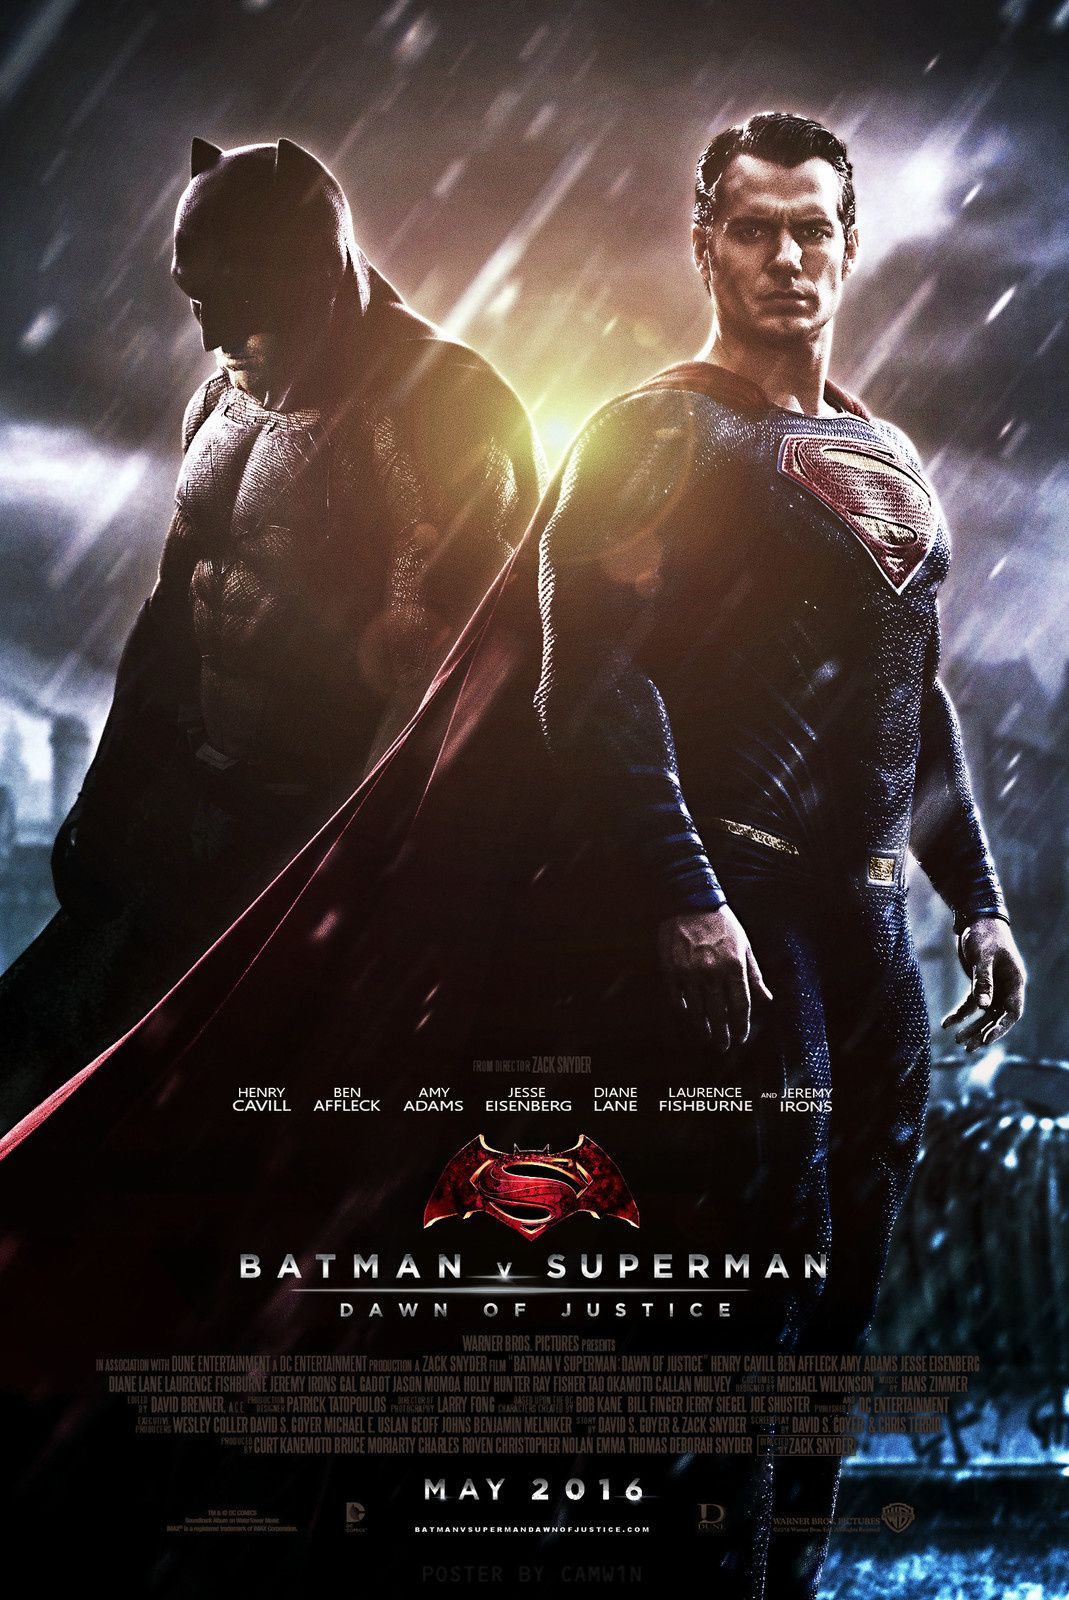 Batman vs Superman s'offre le record de mars